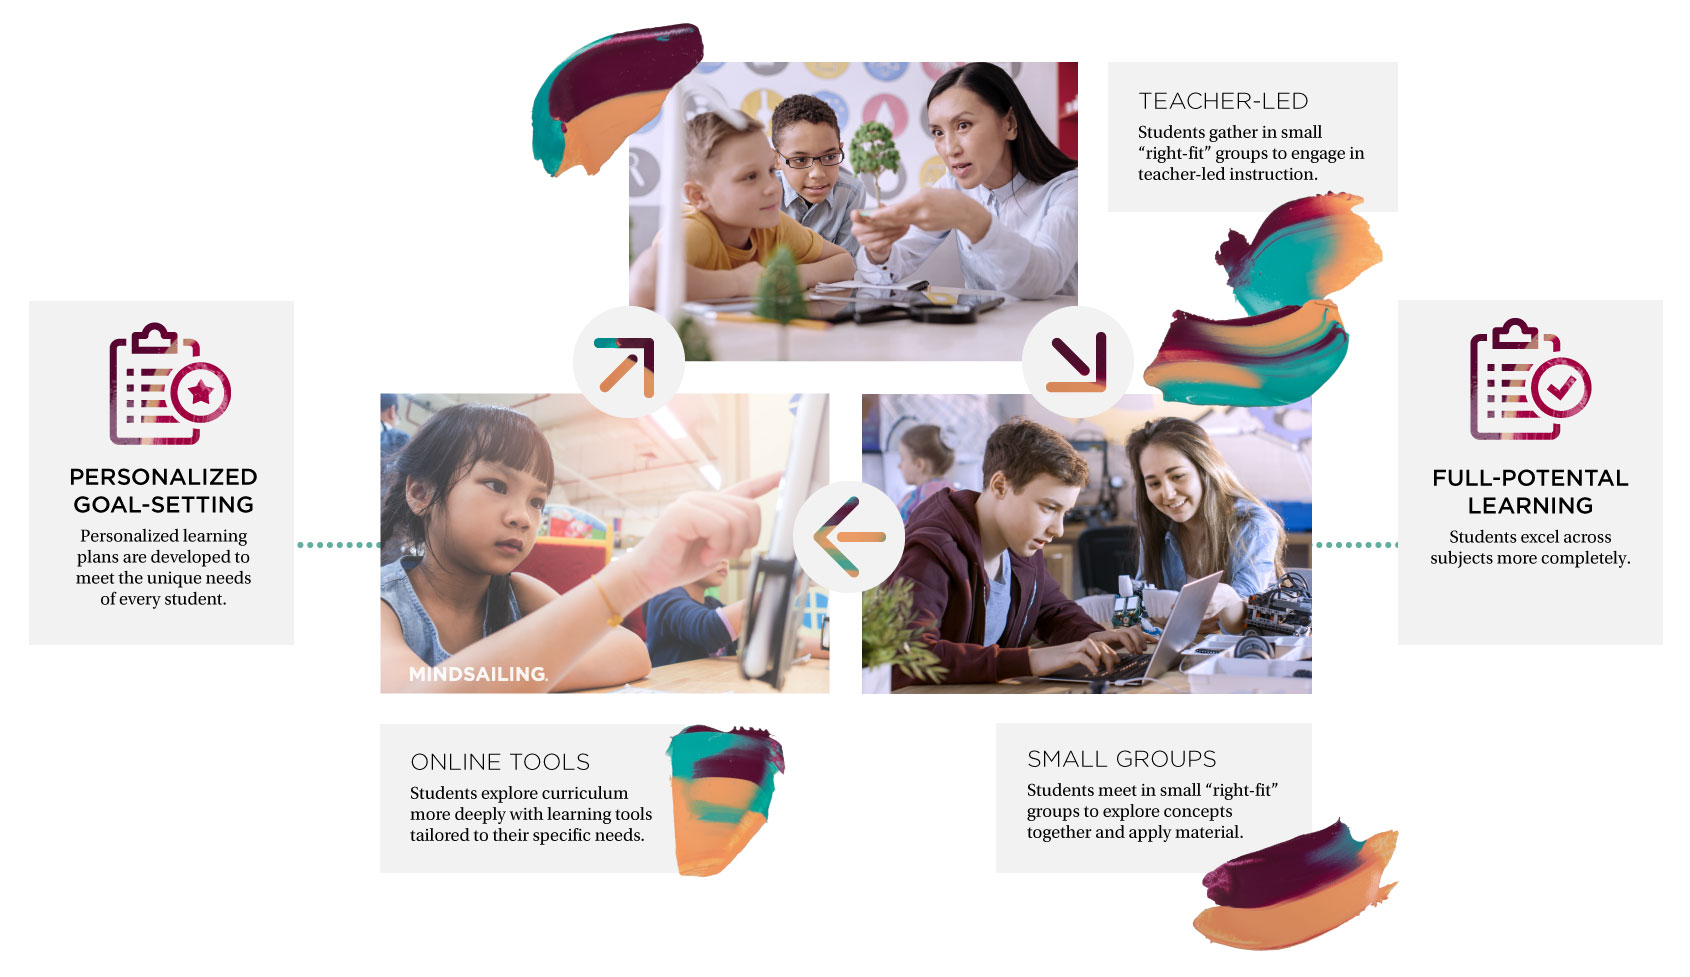 109BL_PersonalizedLearning_Infographic_0.6.jpg